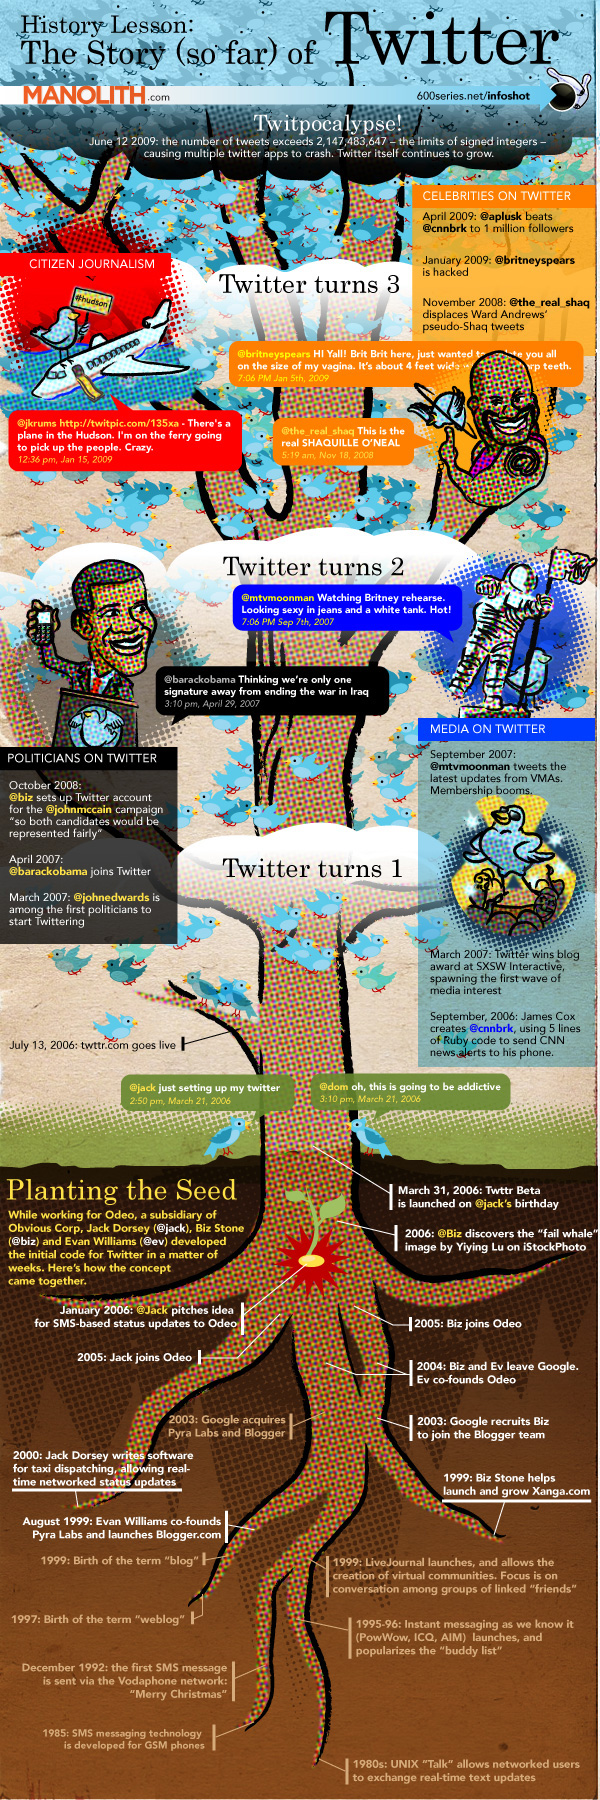 the-story-of-twitter